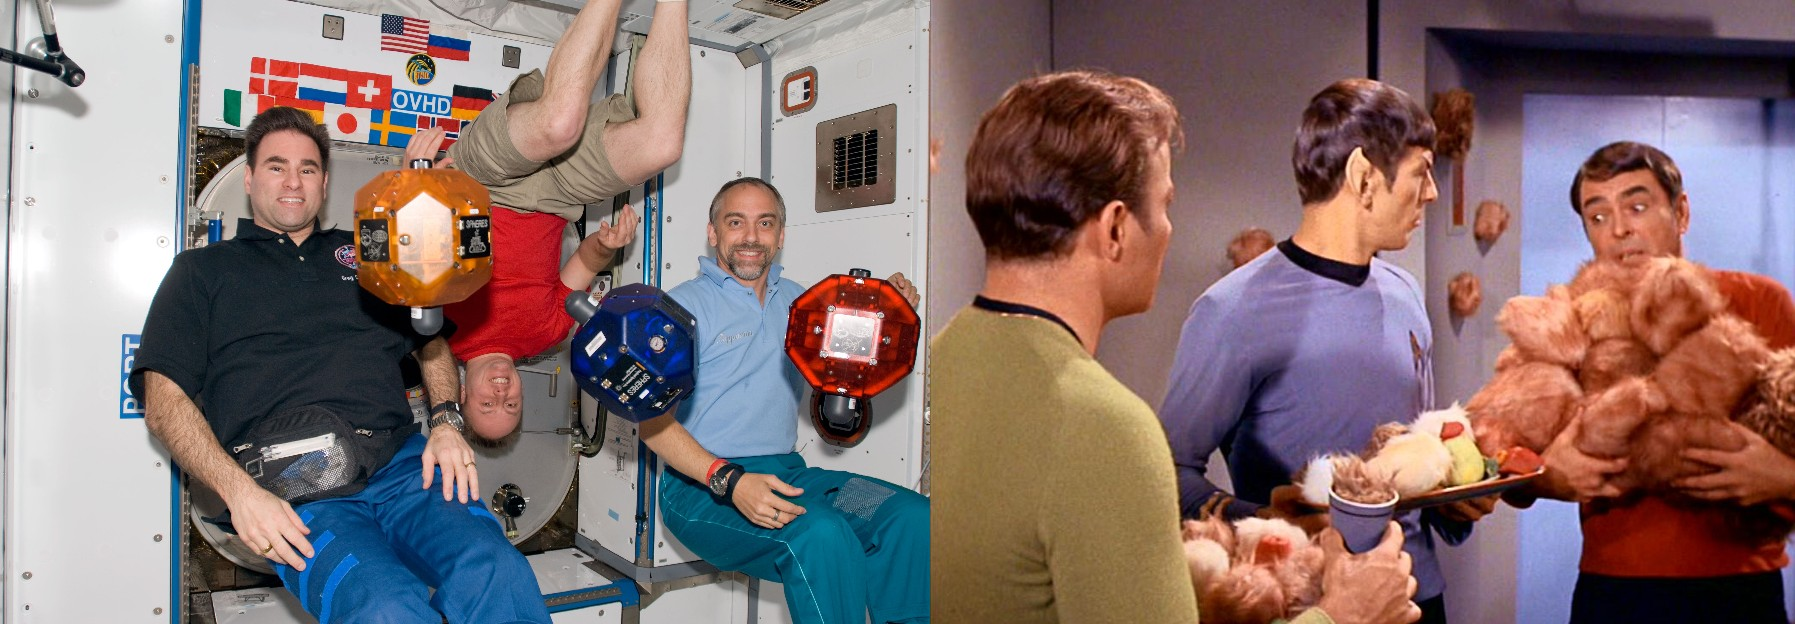 Tribbles vs ISS Spheres 2